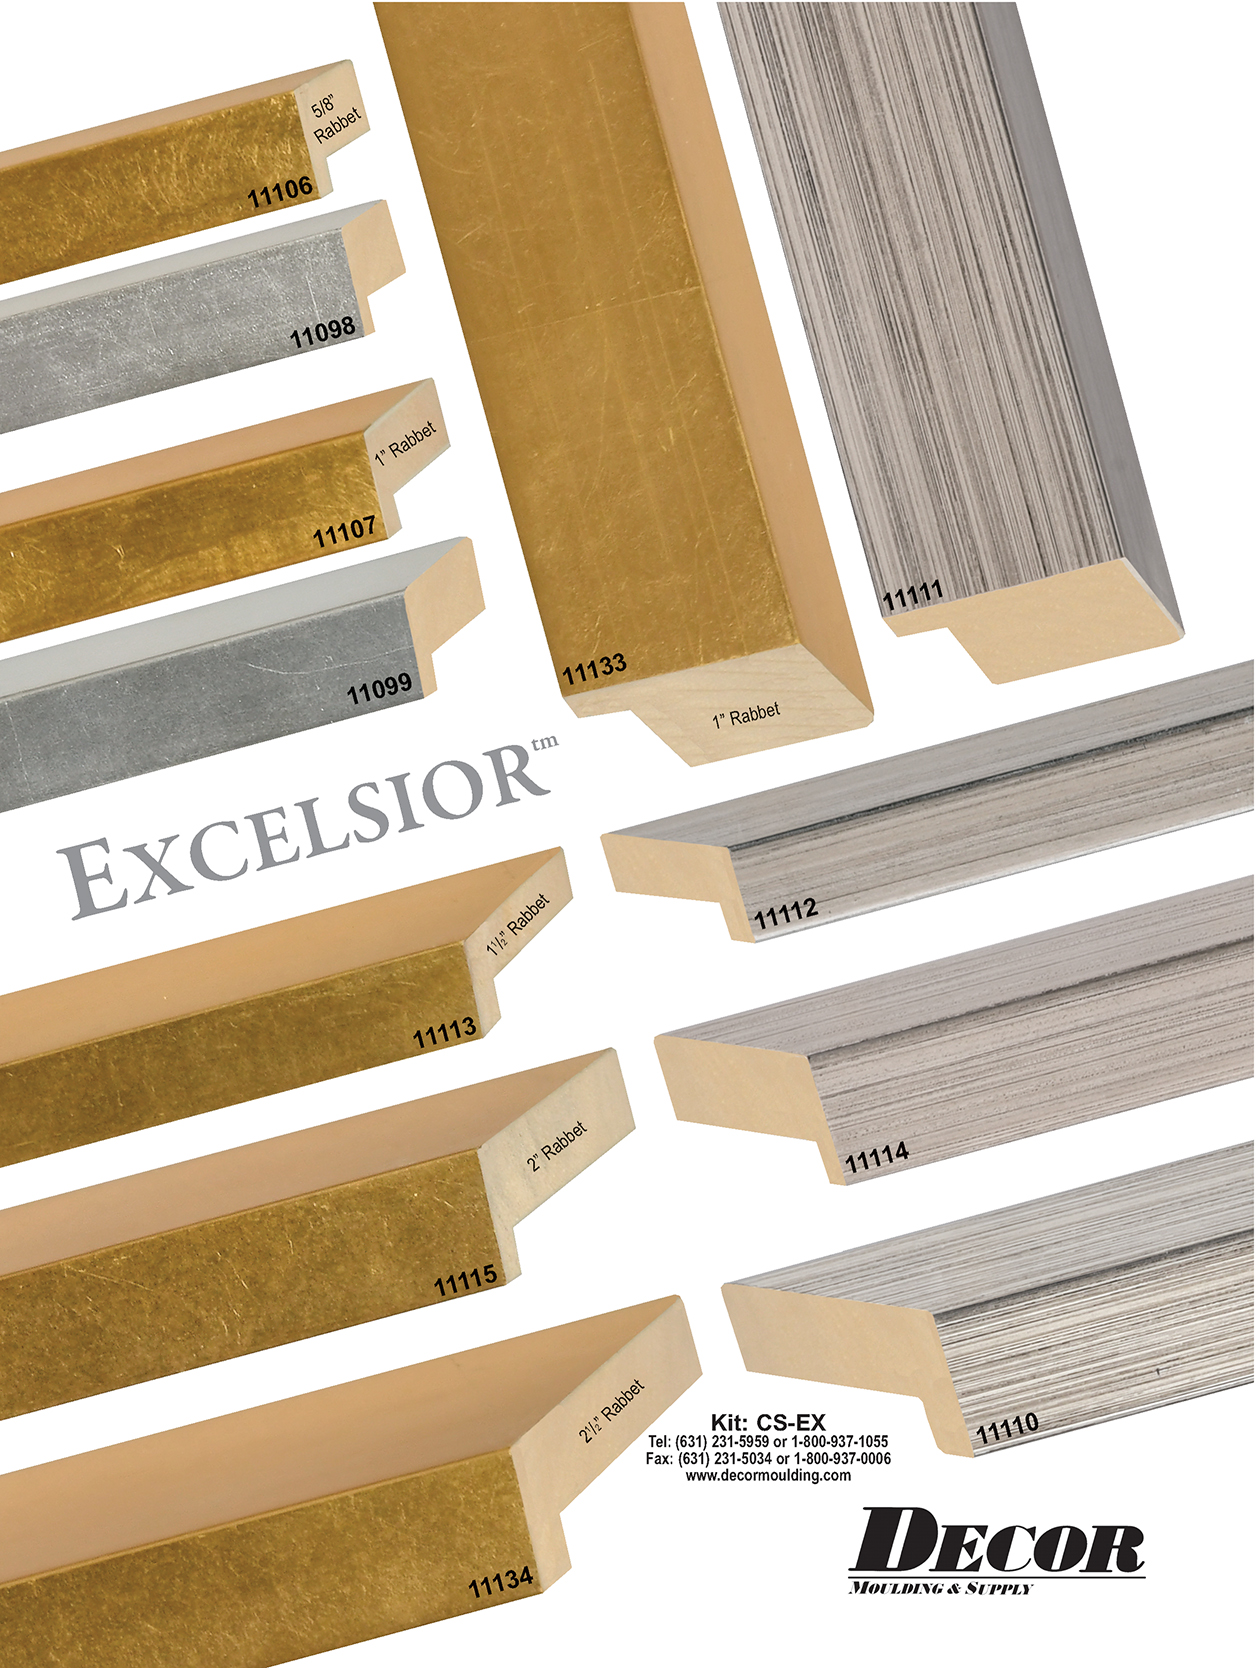 Welcome To Decor Moulding Supply